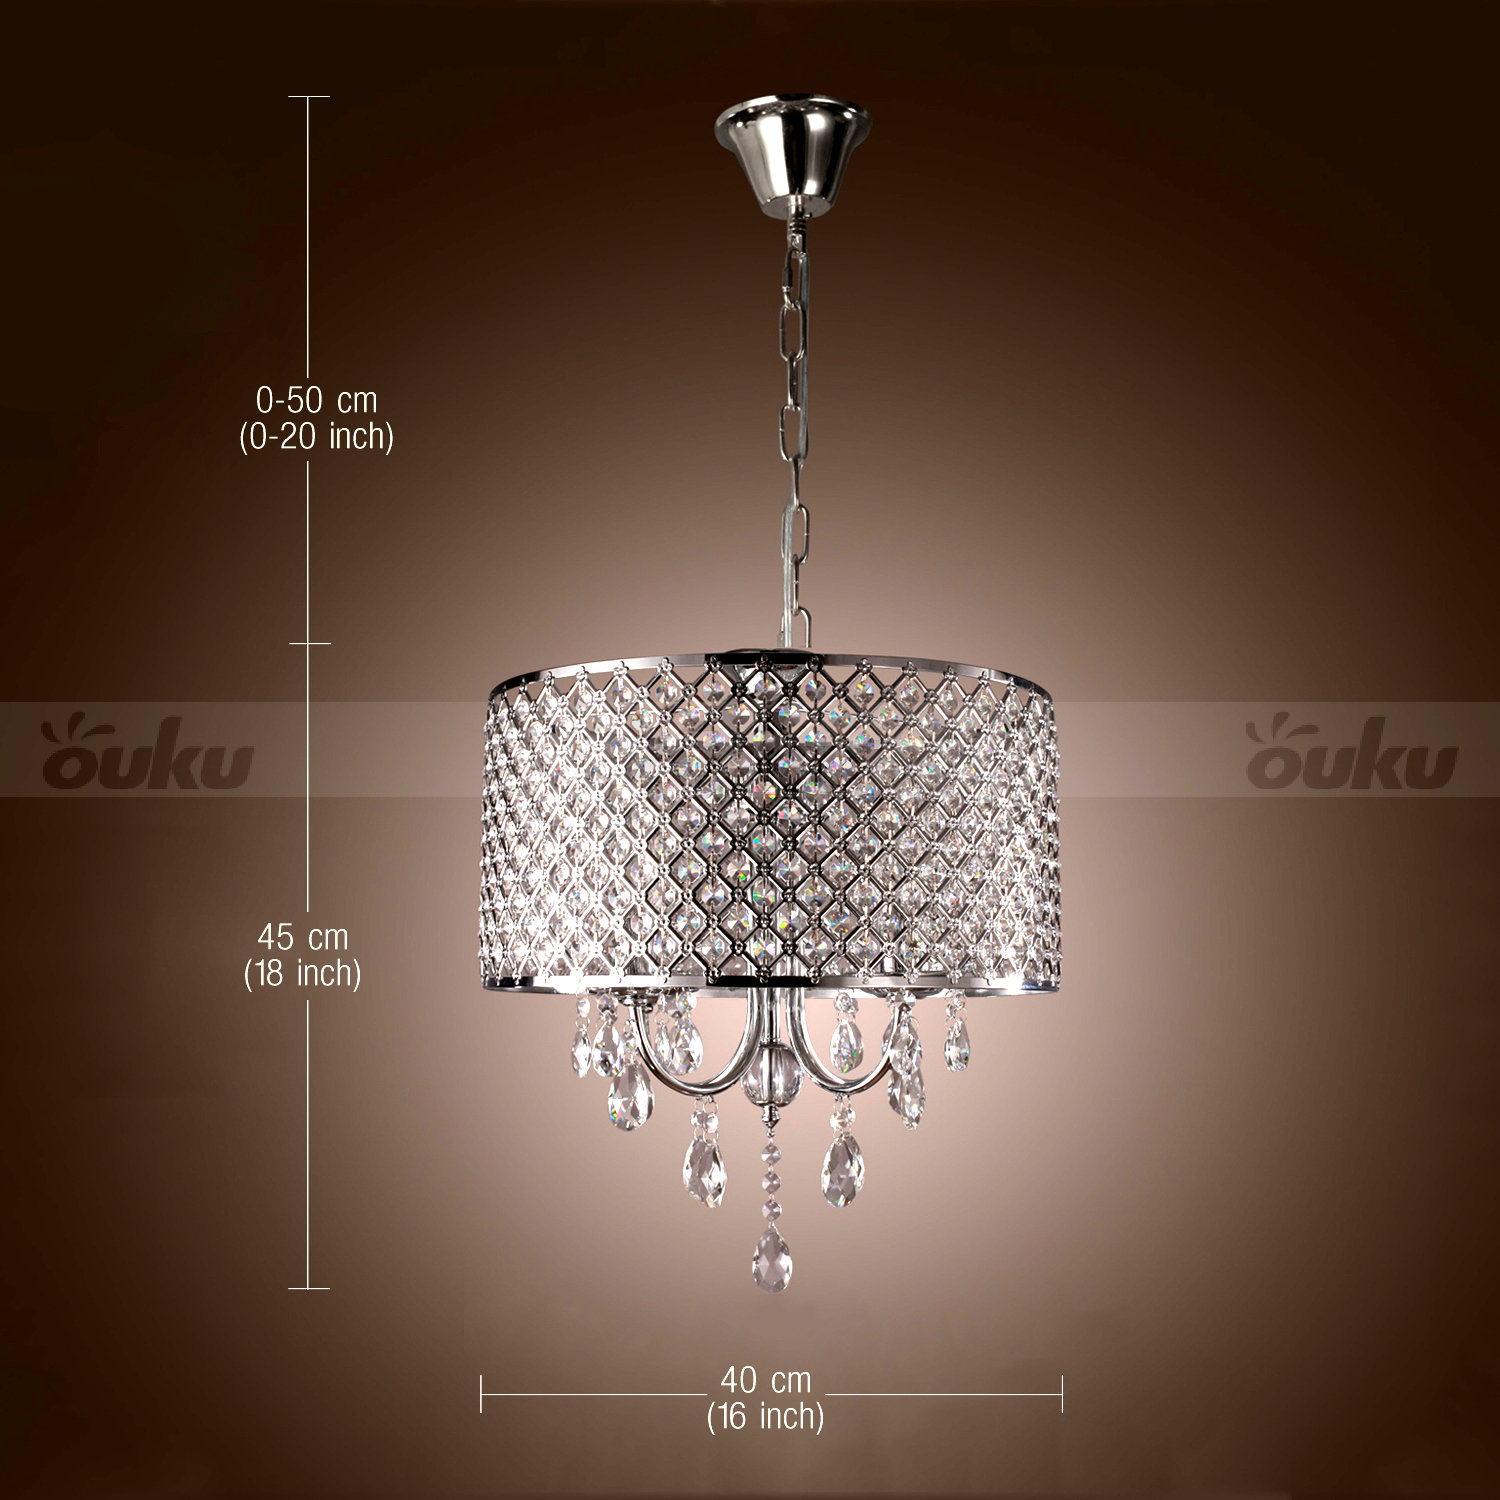 Modern Drum Ceiling Lighting Chandelier Light 4 Lamp LED Pendant